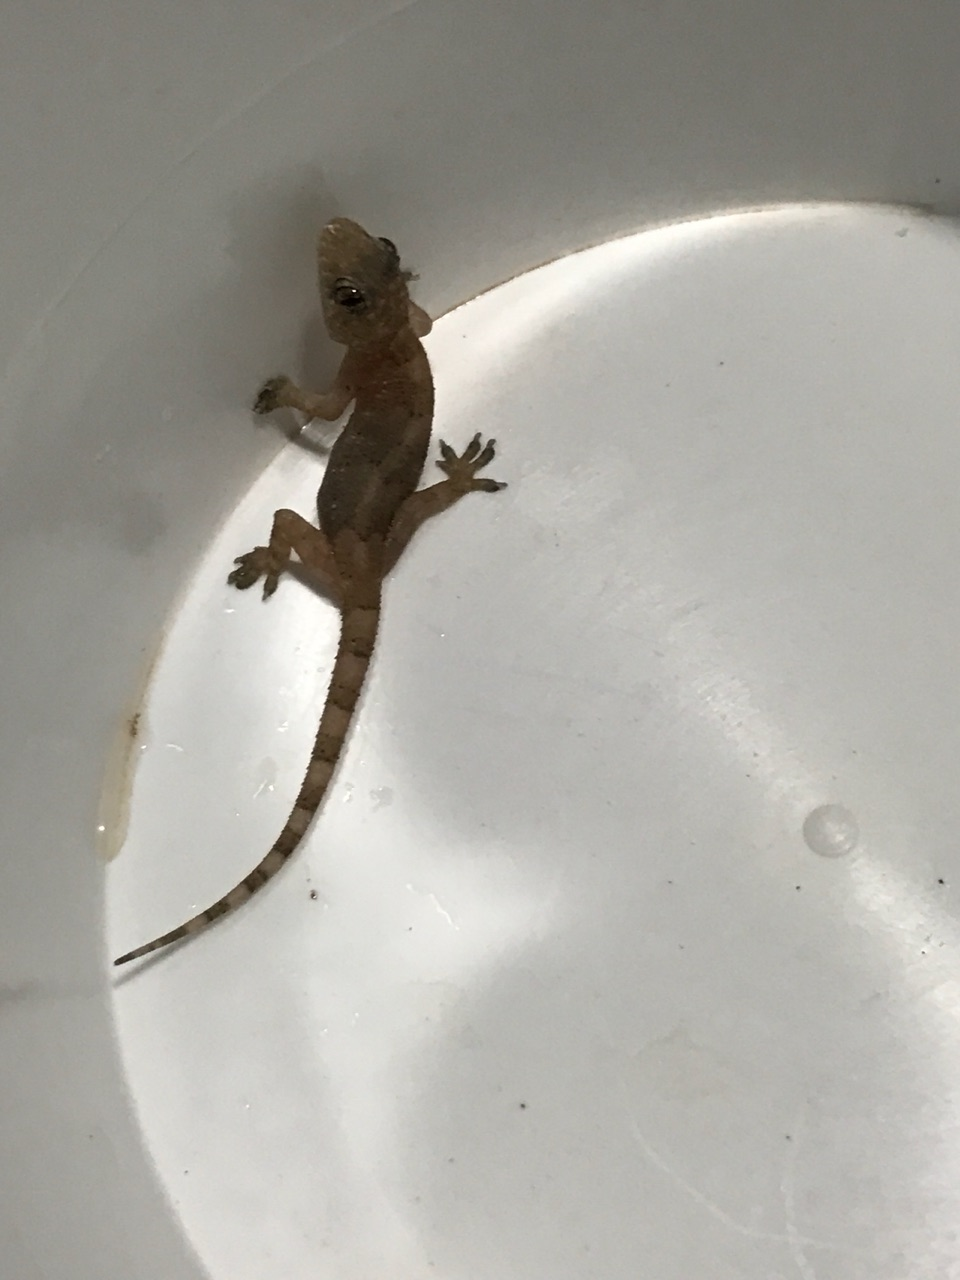 Found this one in the kitchen sink